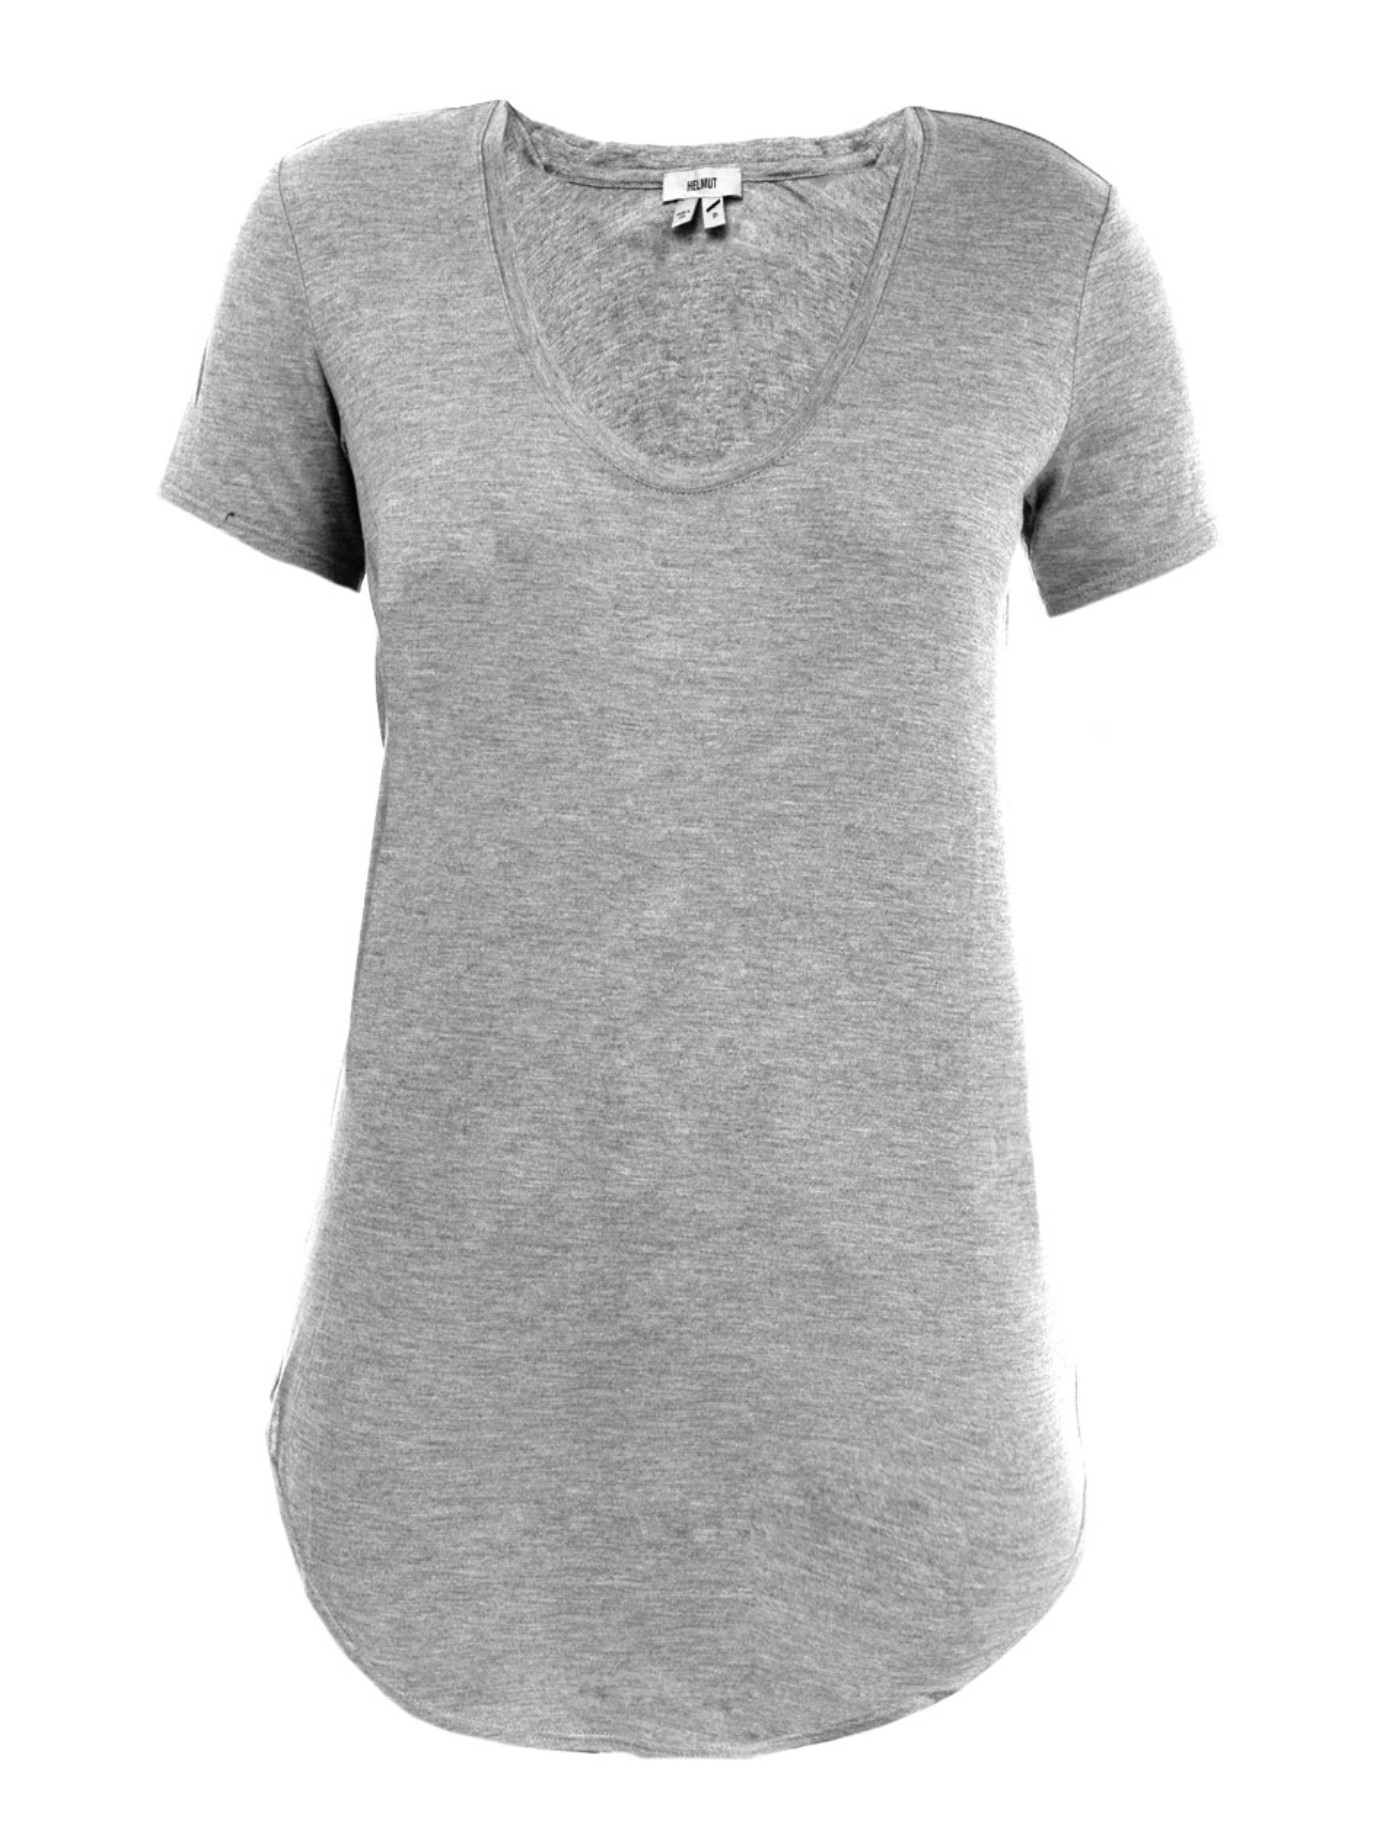 lyst helmut lang kinetic jersey t shirt in gray. Black Bedroom Furniture Sets. Home Design Ideas